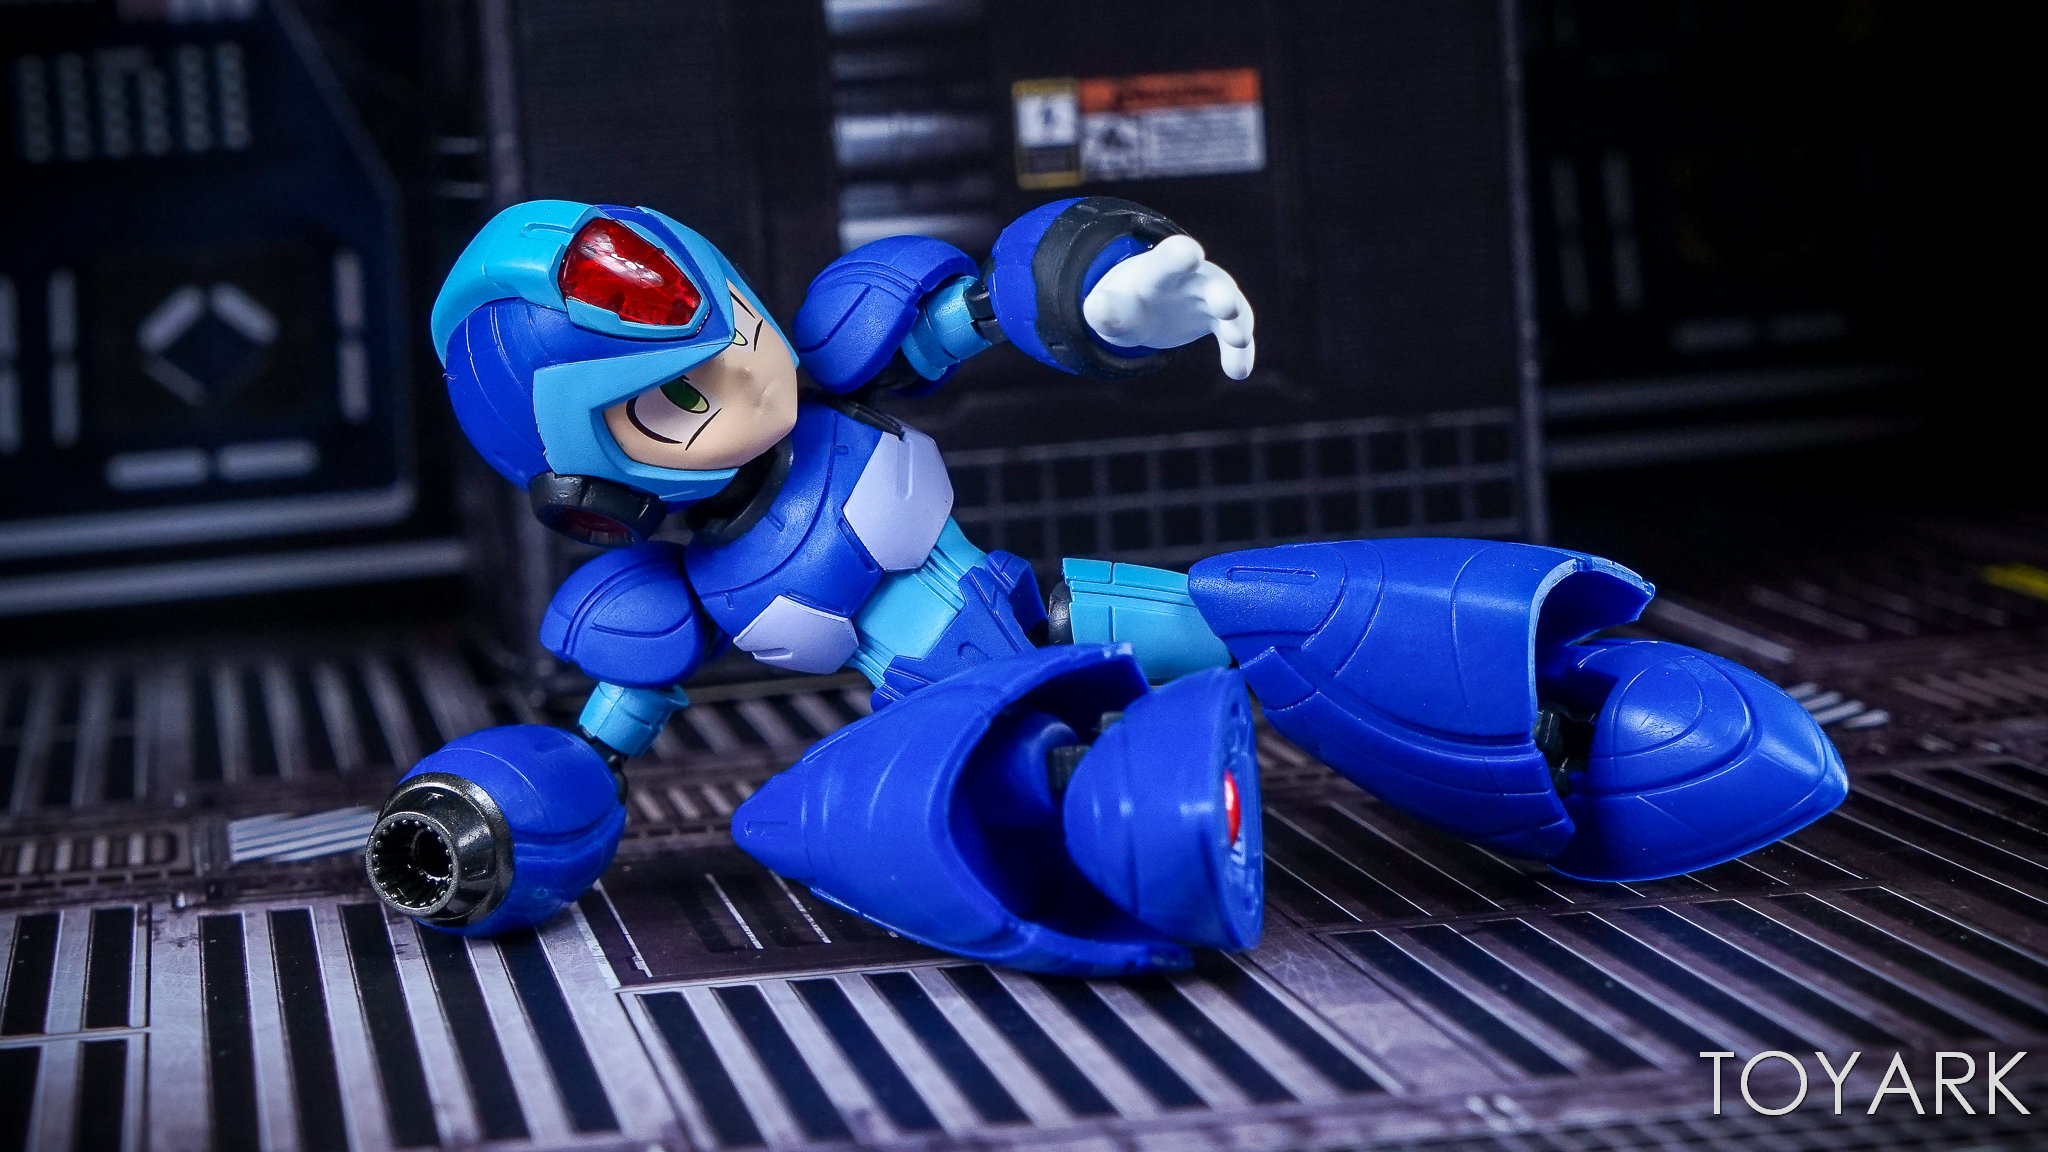 http://news.toyark.com/wp-content/uploads/sites/4/2017/11/Mega-Man-X-NX-Edge-Style-015.jpg